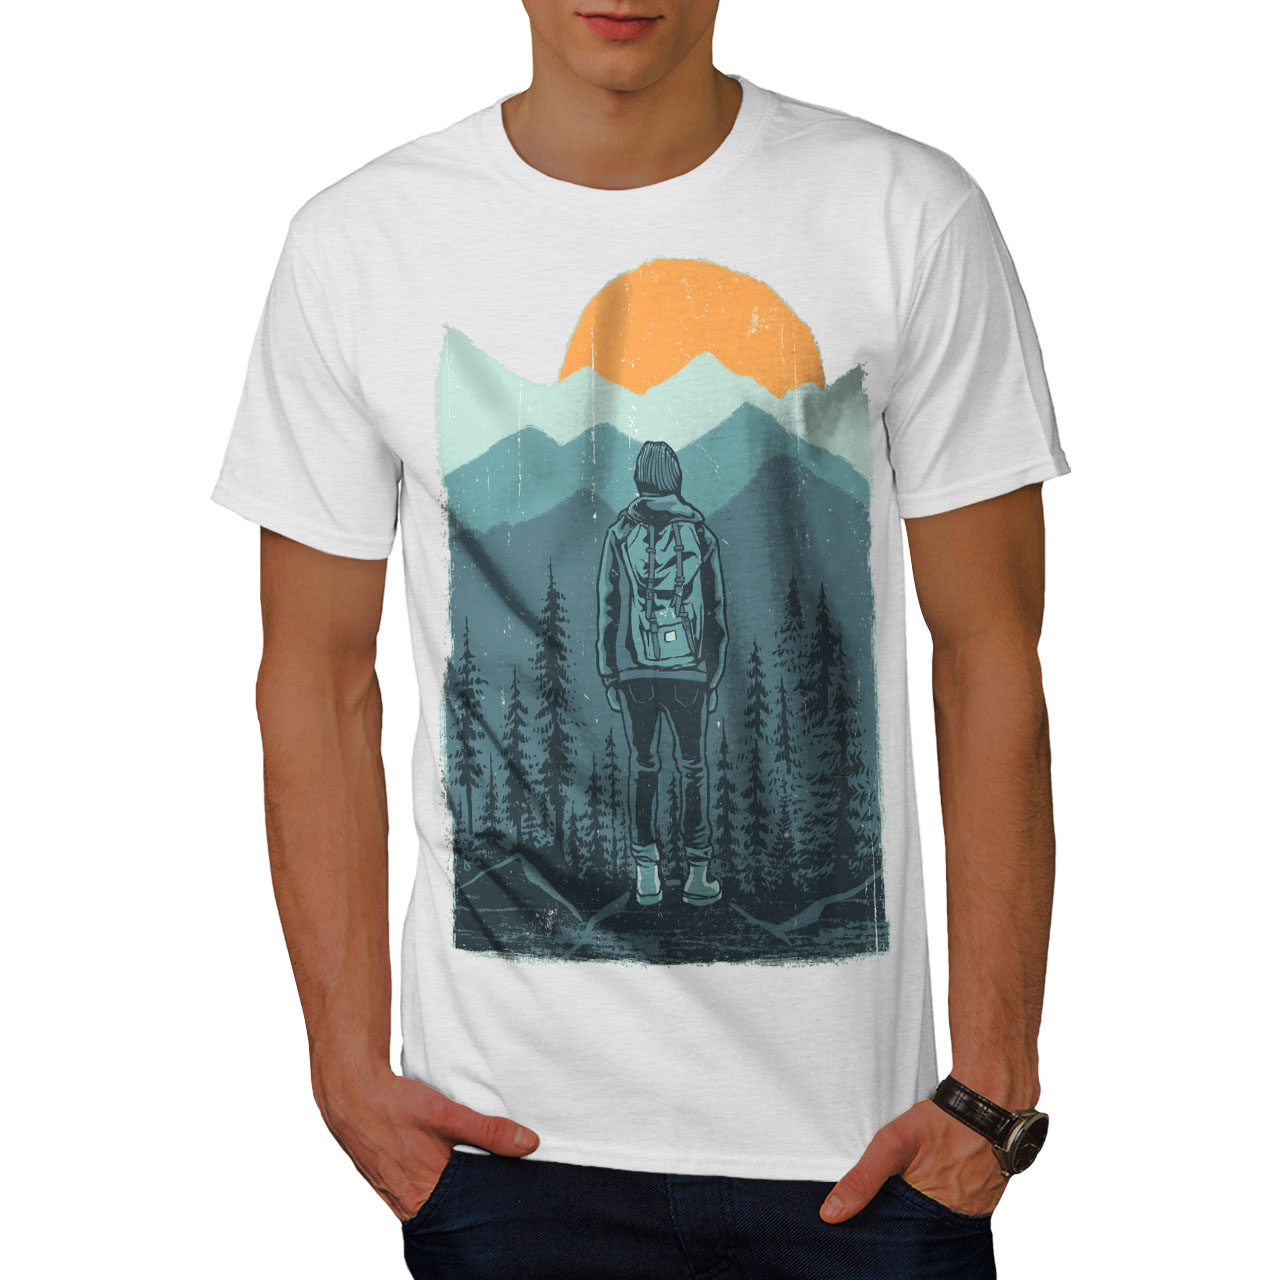 Wellcoda-SUNSET-Wilderness-CAMP-Da-Uomo-T-shirt-Wild-design-grafico-stampato-T-shirt miniatura 9